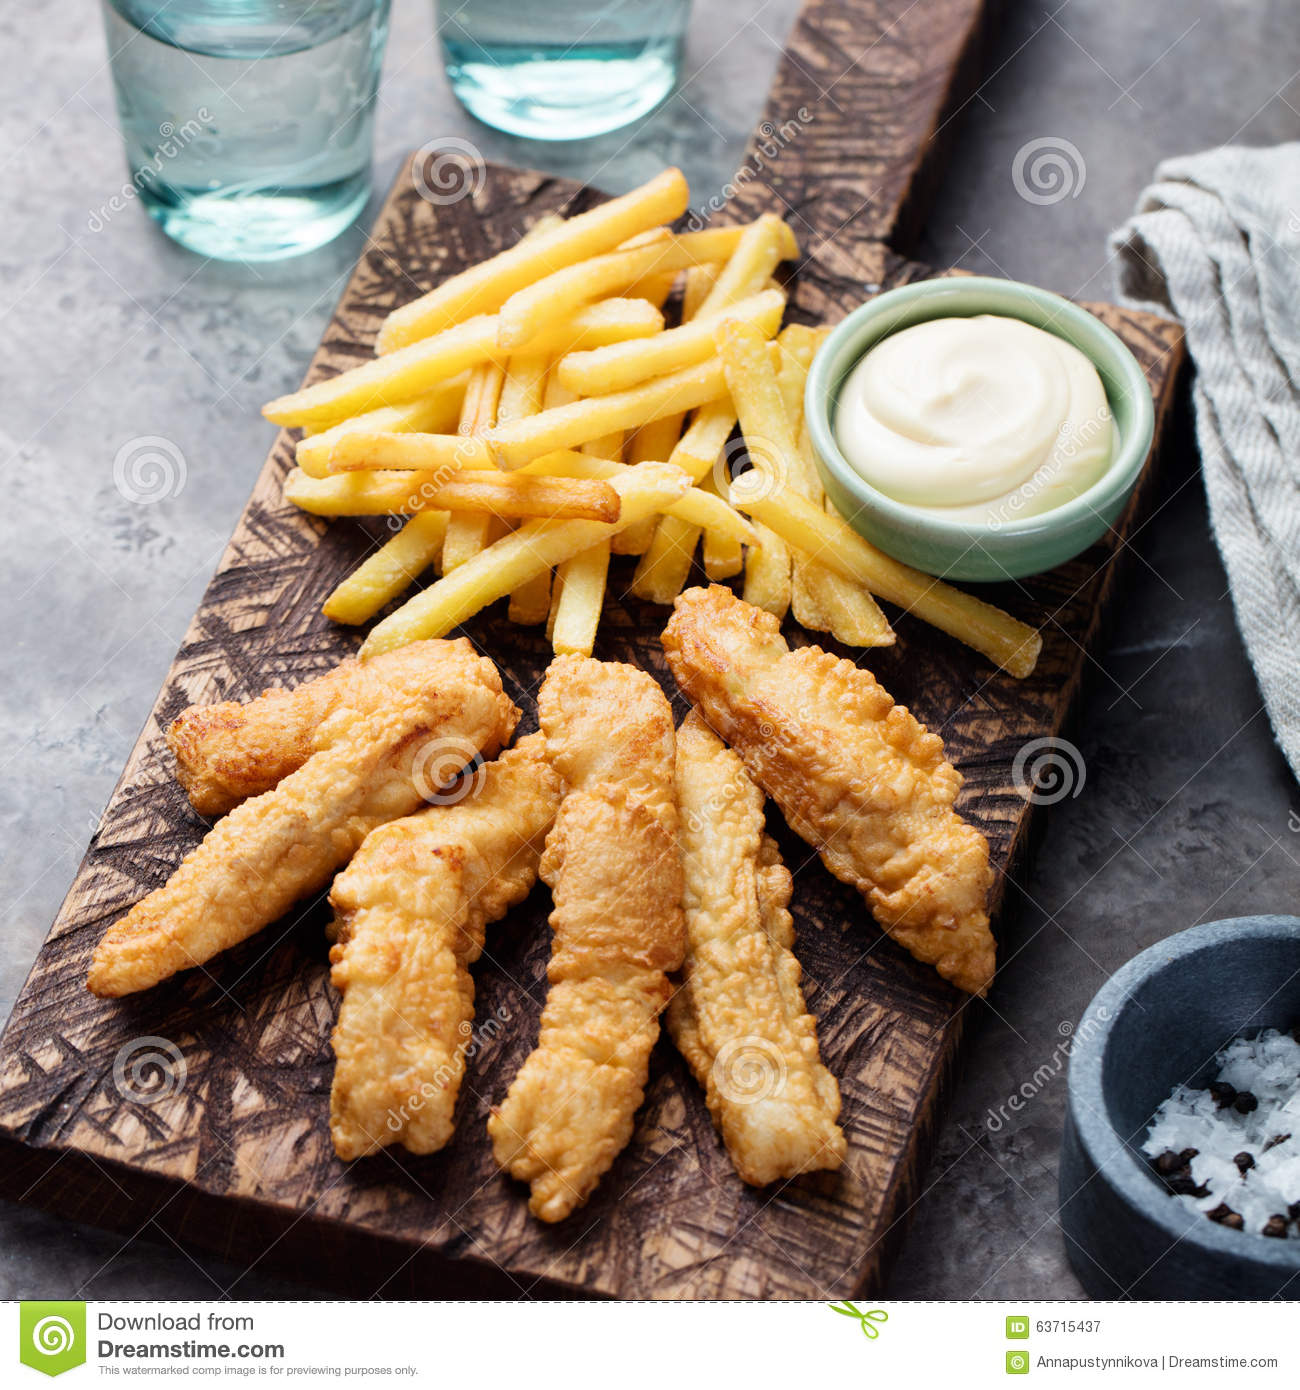 Crispy fish and chips tartar sauce british food stock for Fish and chips sauce